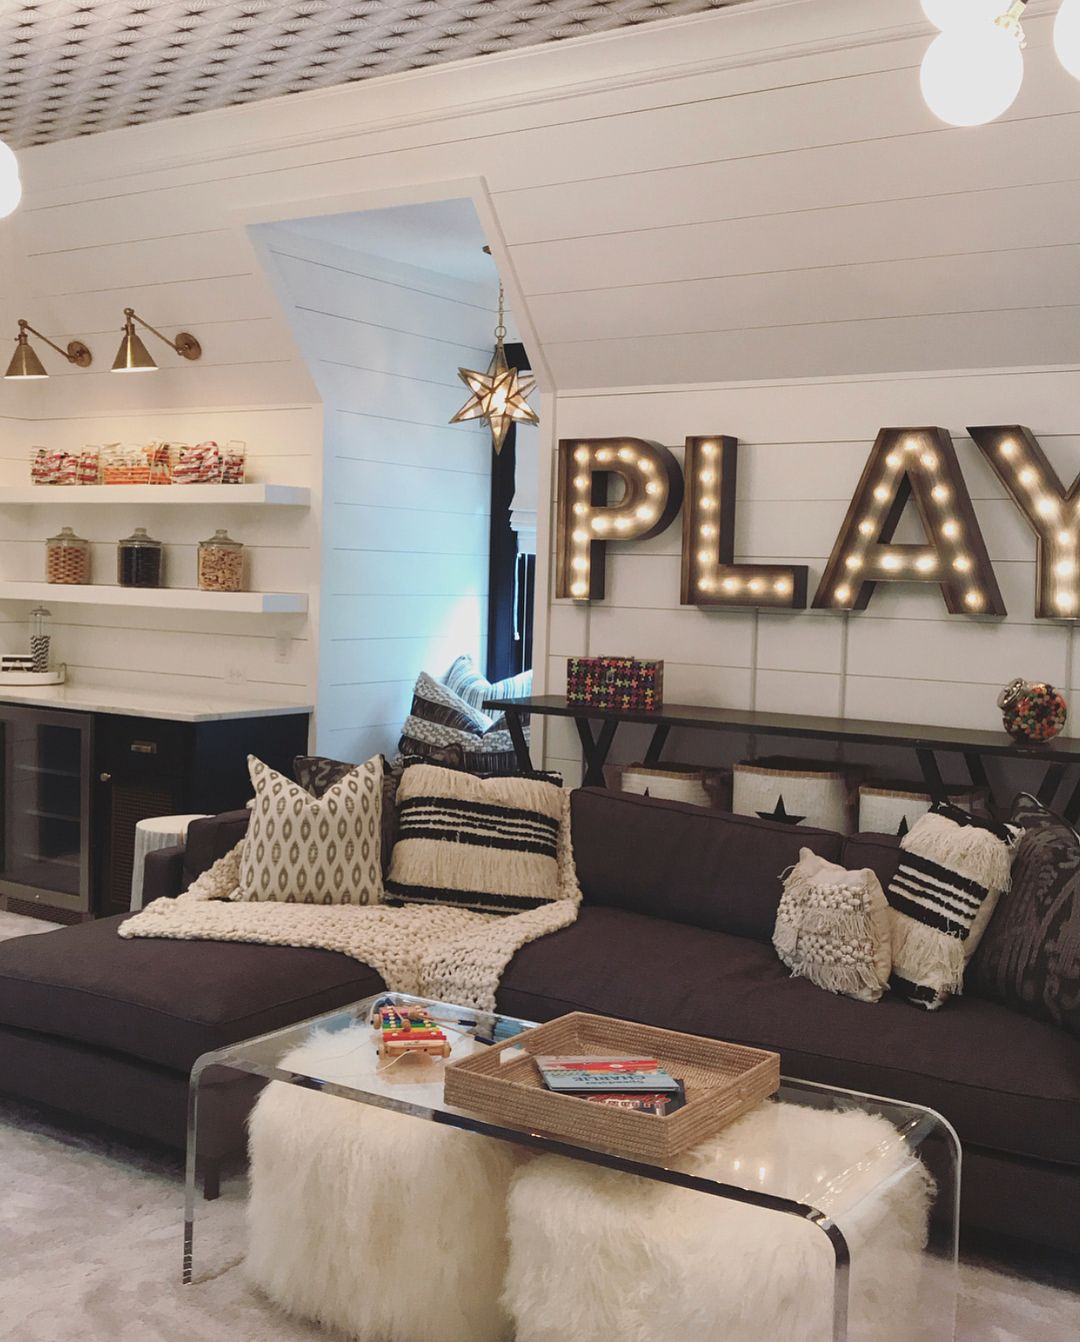 Swipe To See All Of This Playroom! My Favorite Part Is The Loft Area